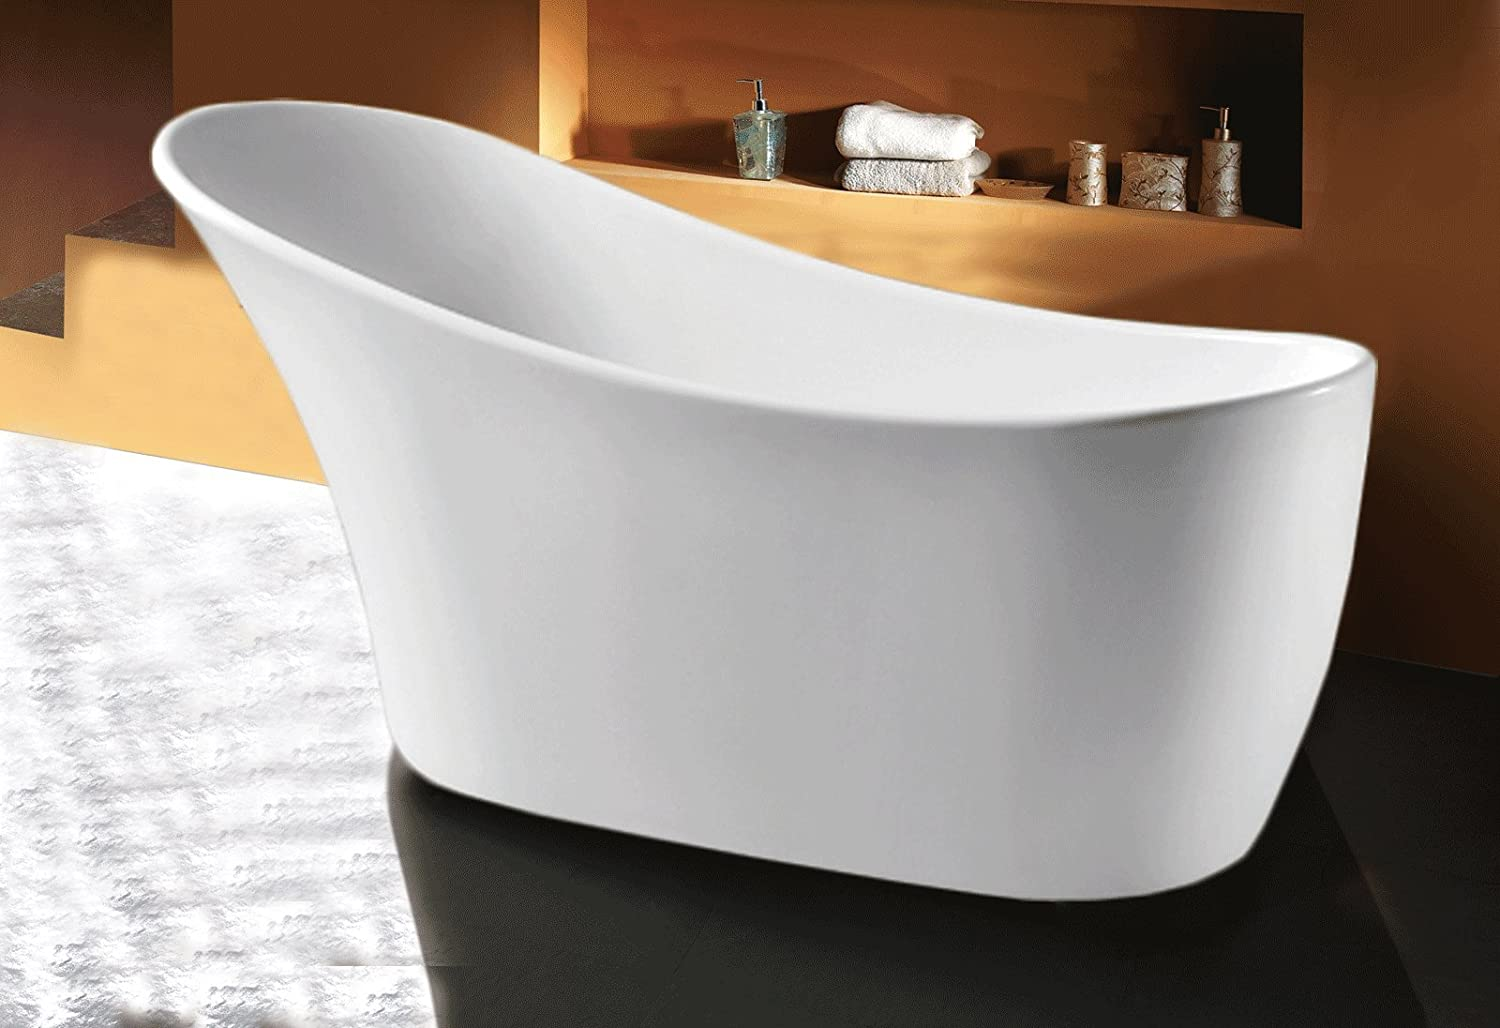 Top 10 Best Free Standing Acrylic Bathtubs 2016 2017 On